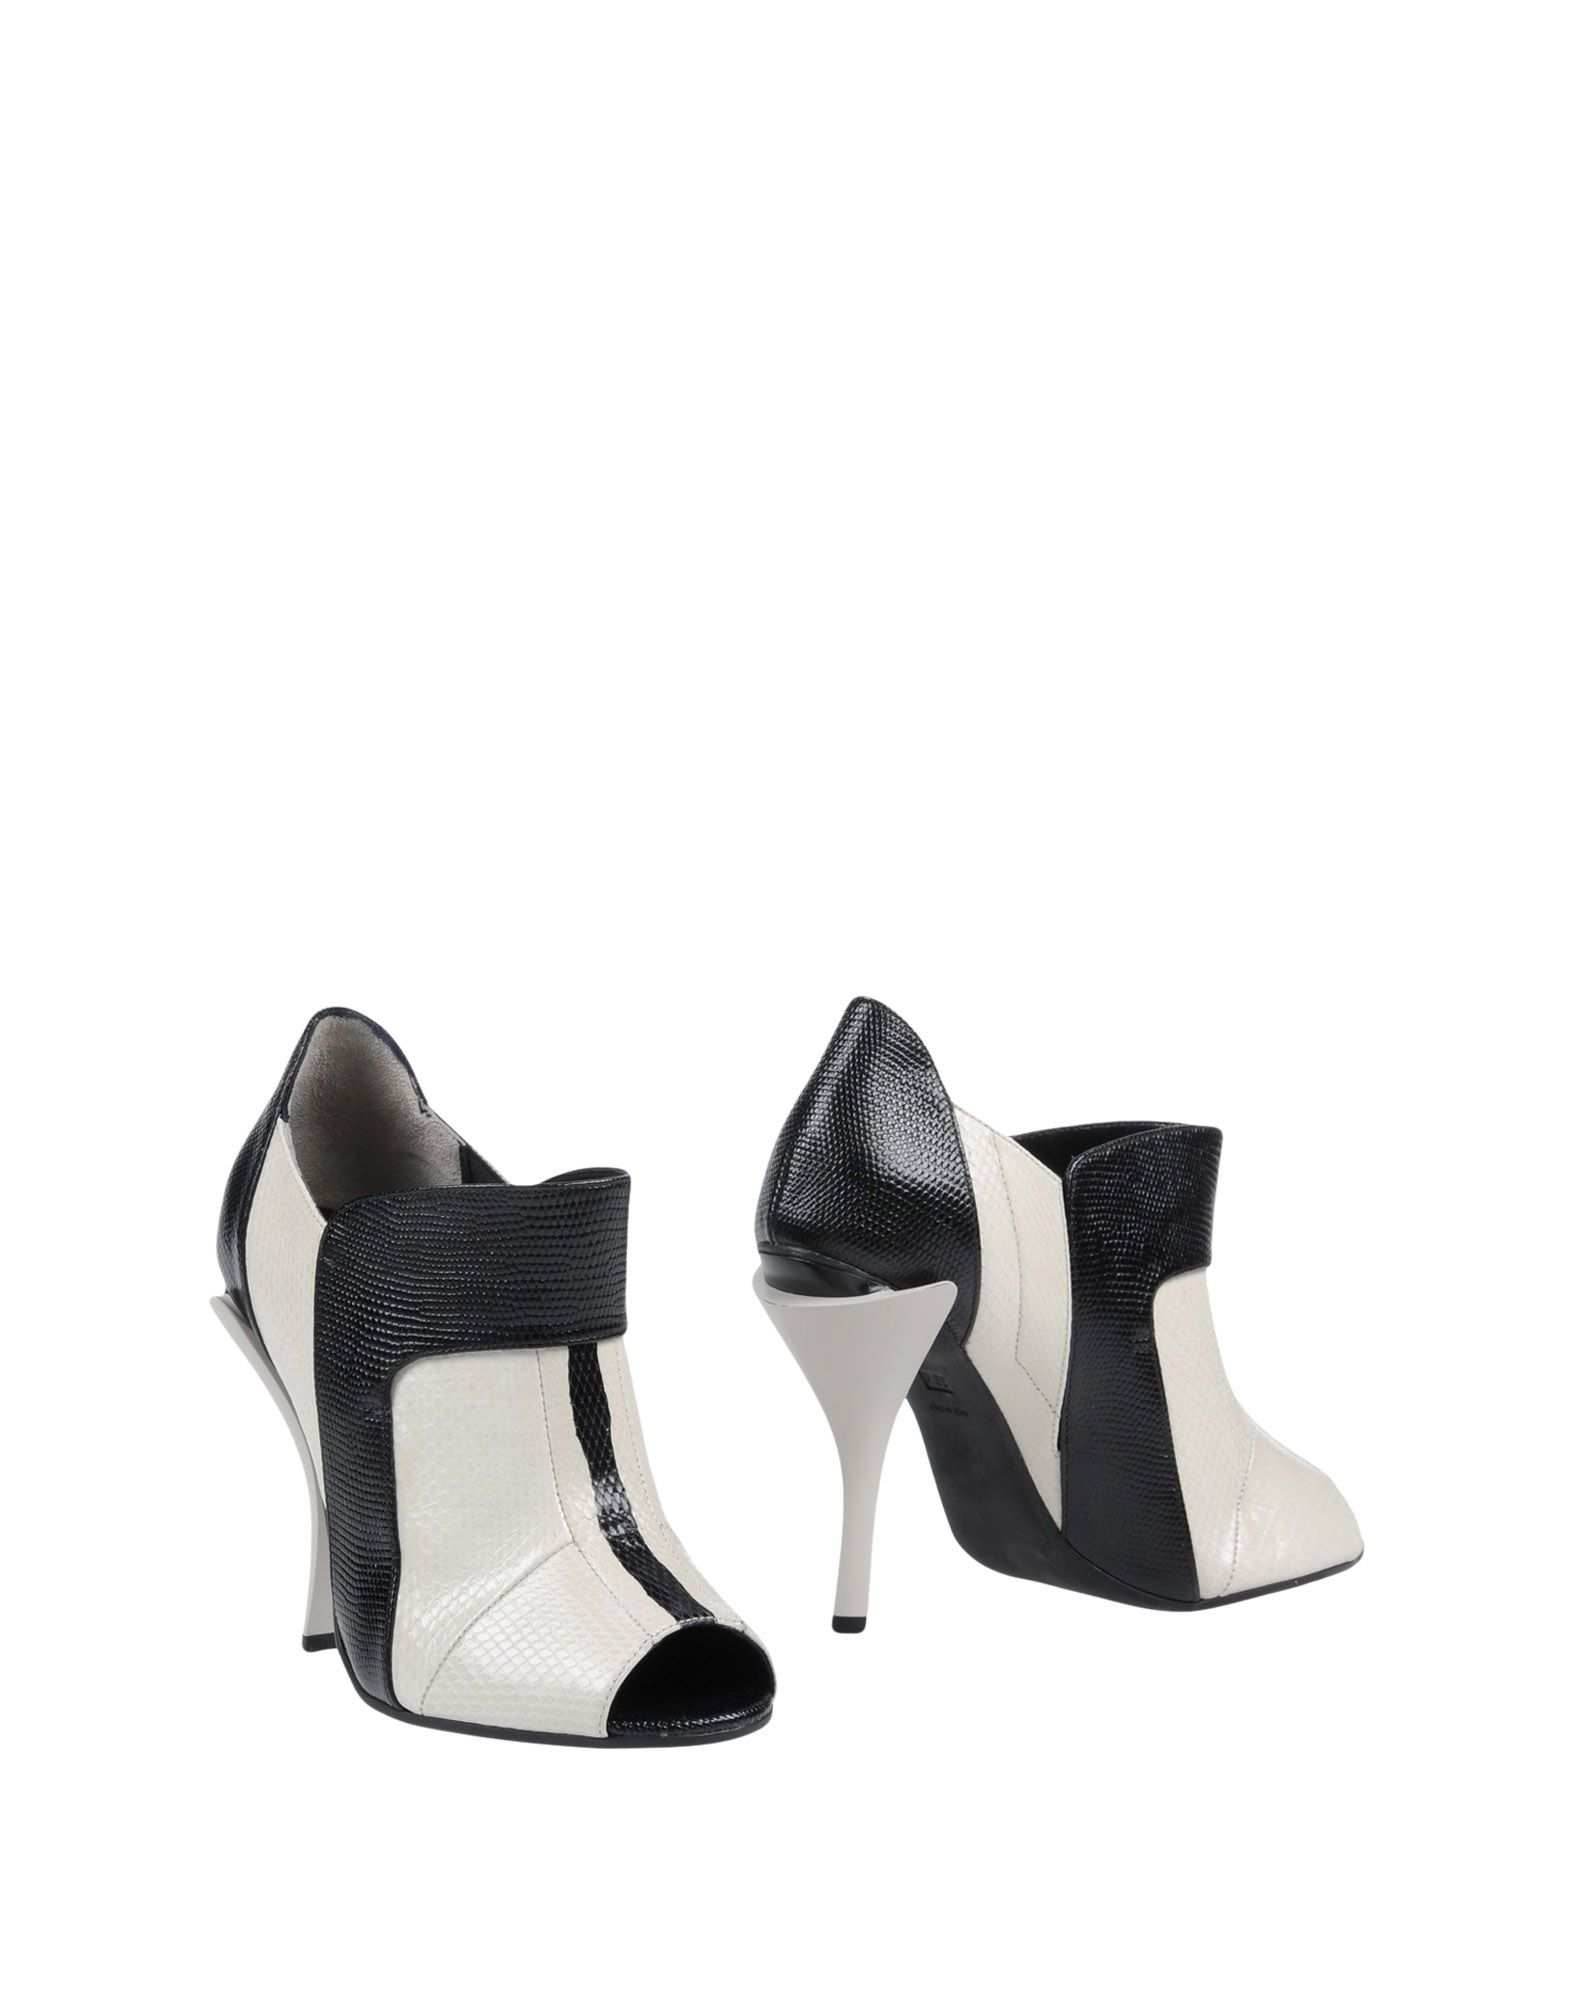 Bottine Fendi Femme - Bottines Fendi sur